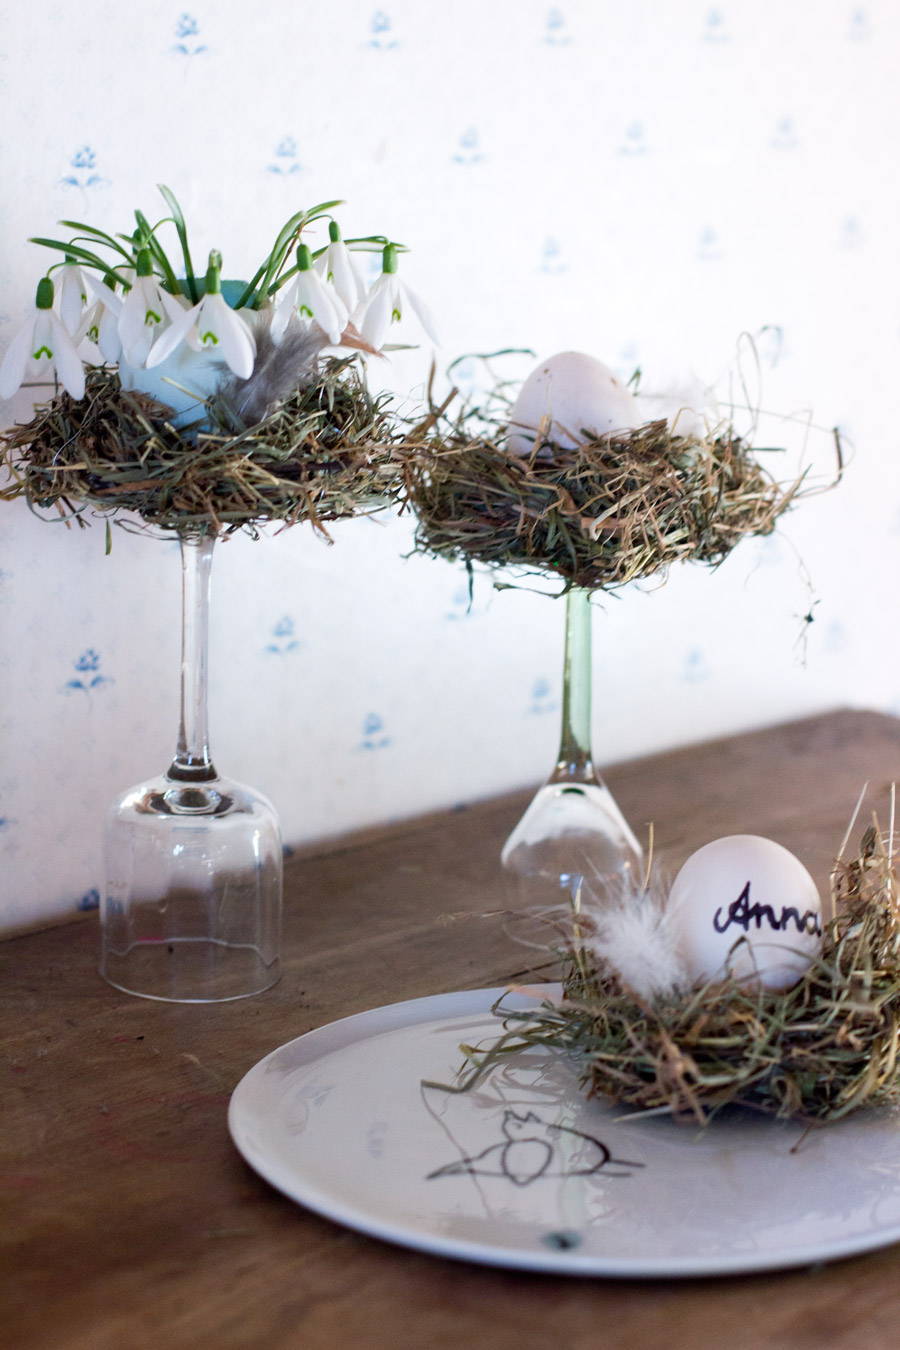 DIY Easter nest with eggs for decor